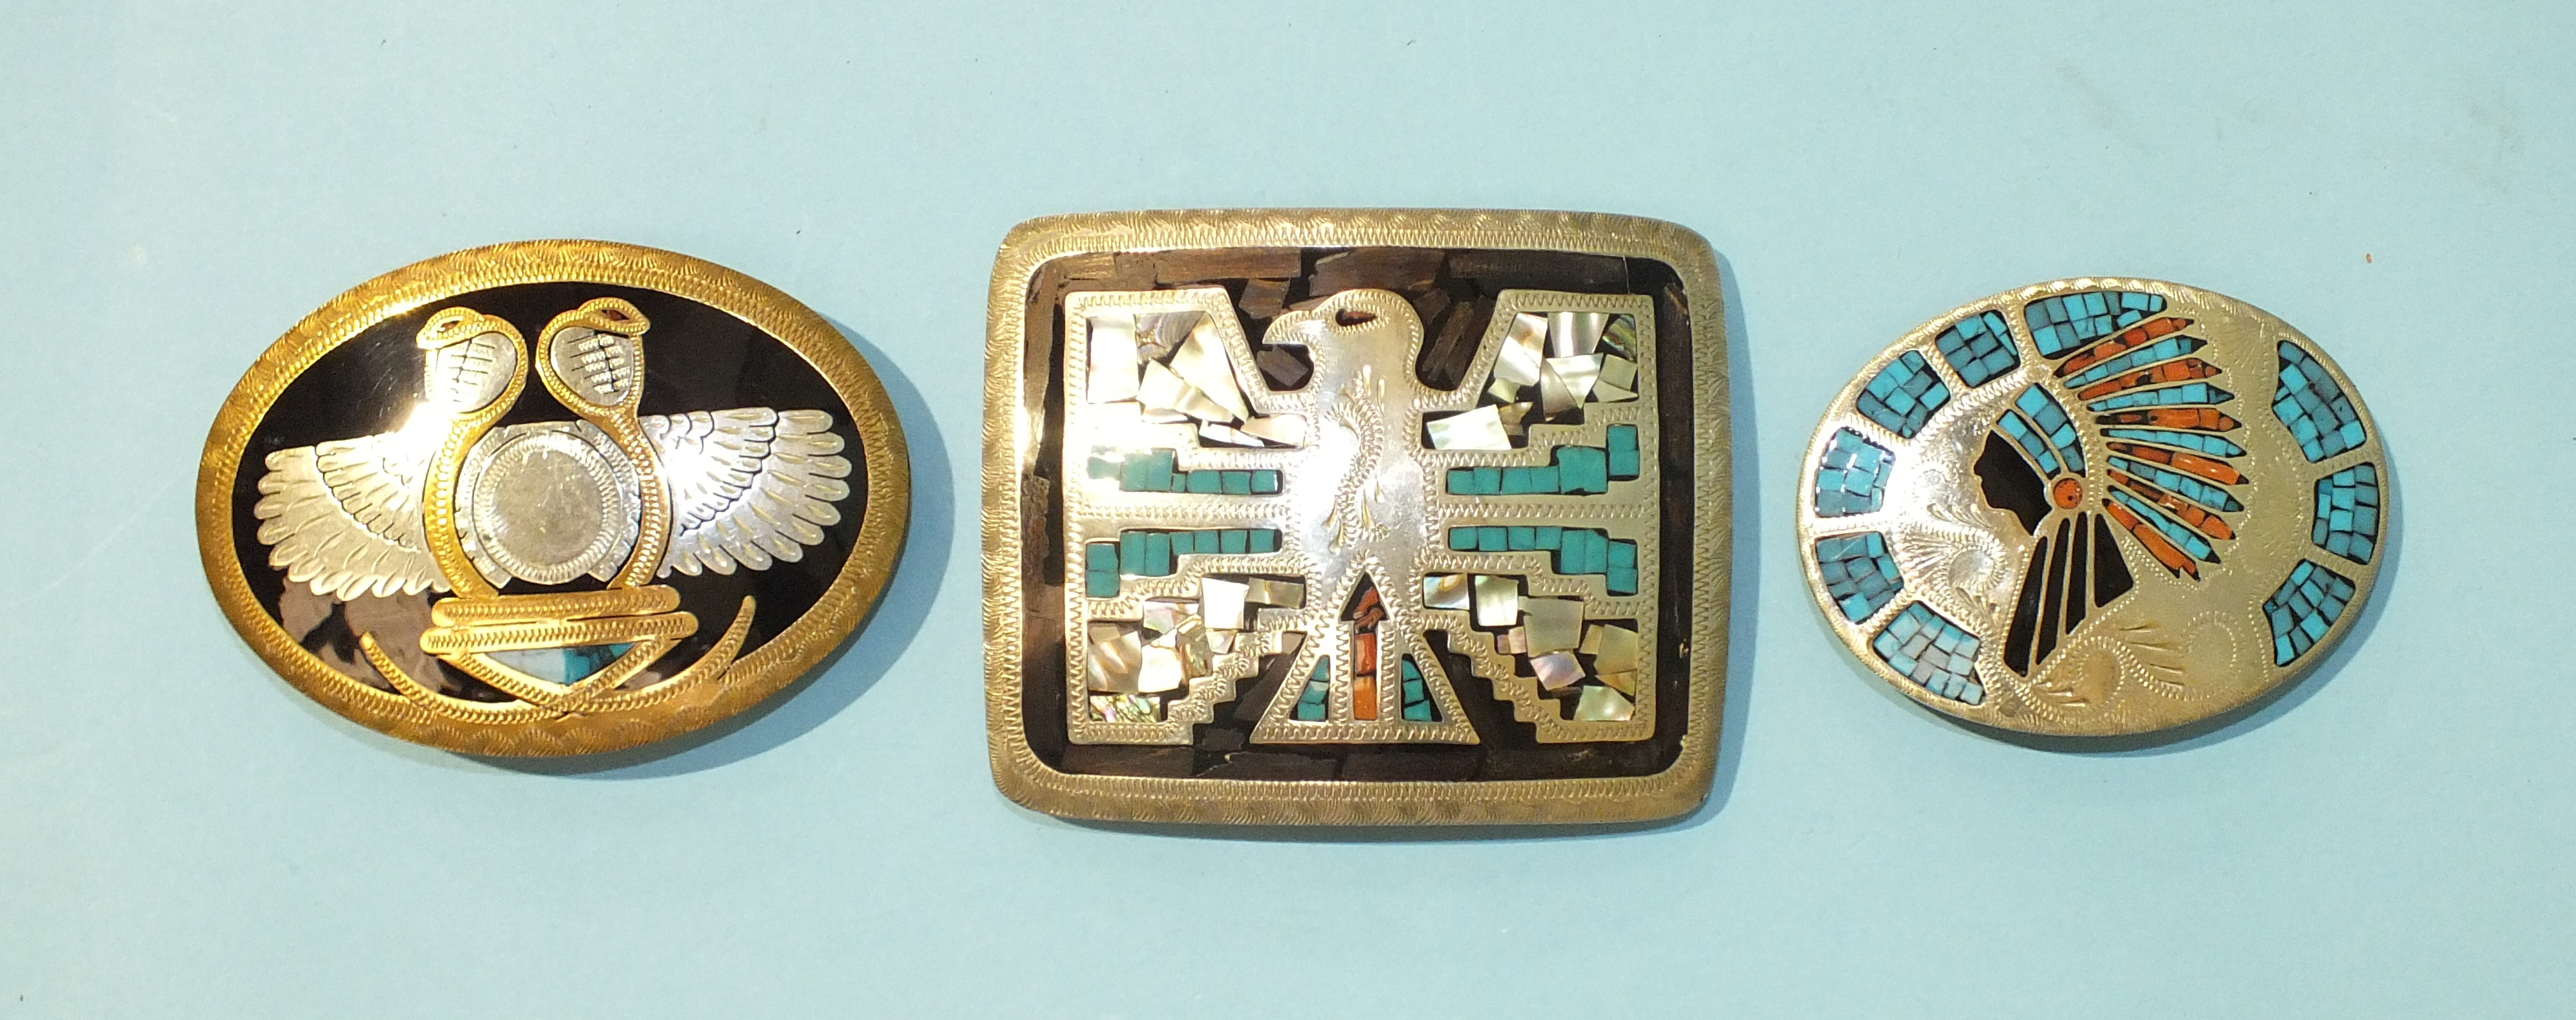 Lot 539 - A Johnson & Held Ltd white metal and enamel oval belt buckle set with turquoise and red stones, with